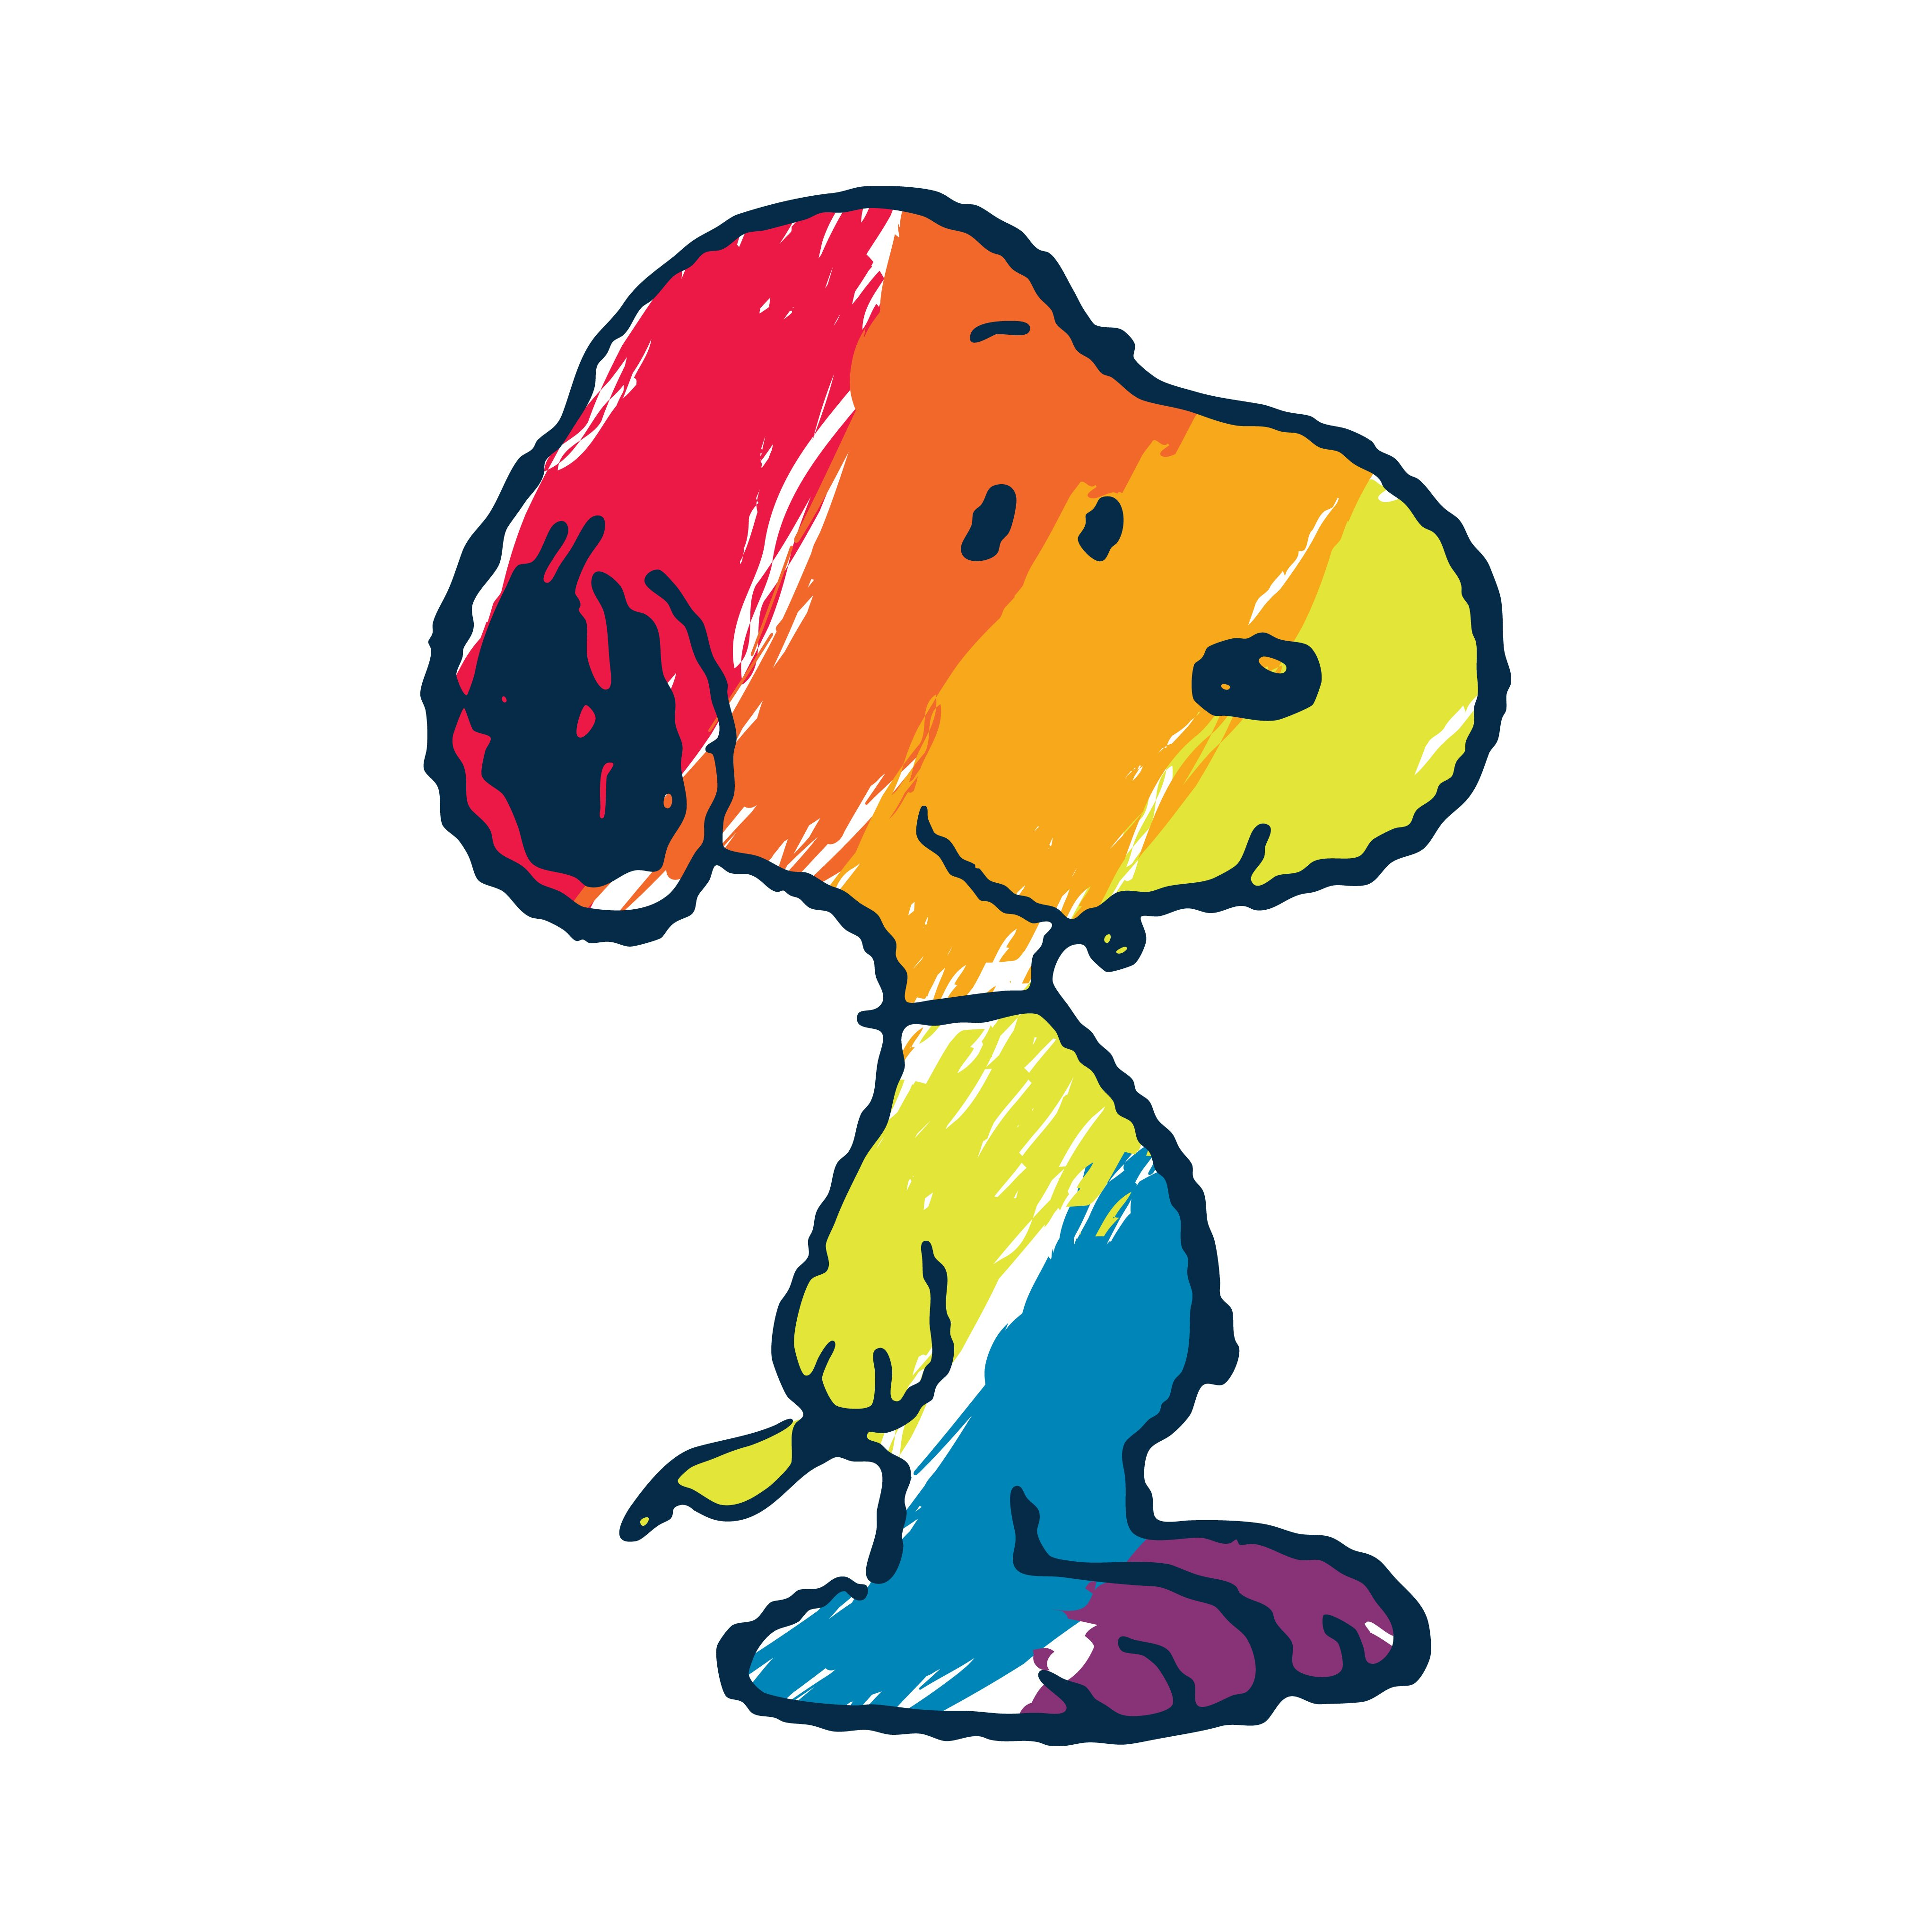 Marmont Hill Peanuts Quot Snoopy Rainbow Quot By Charles M Shultz